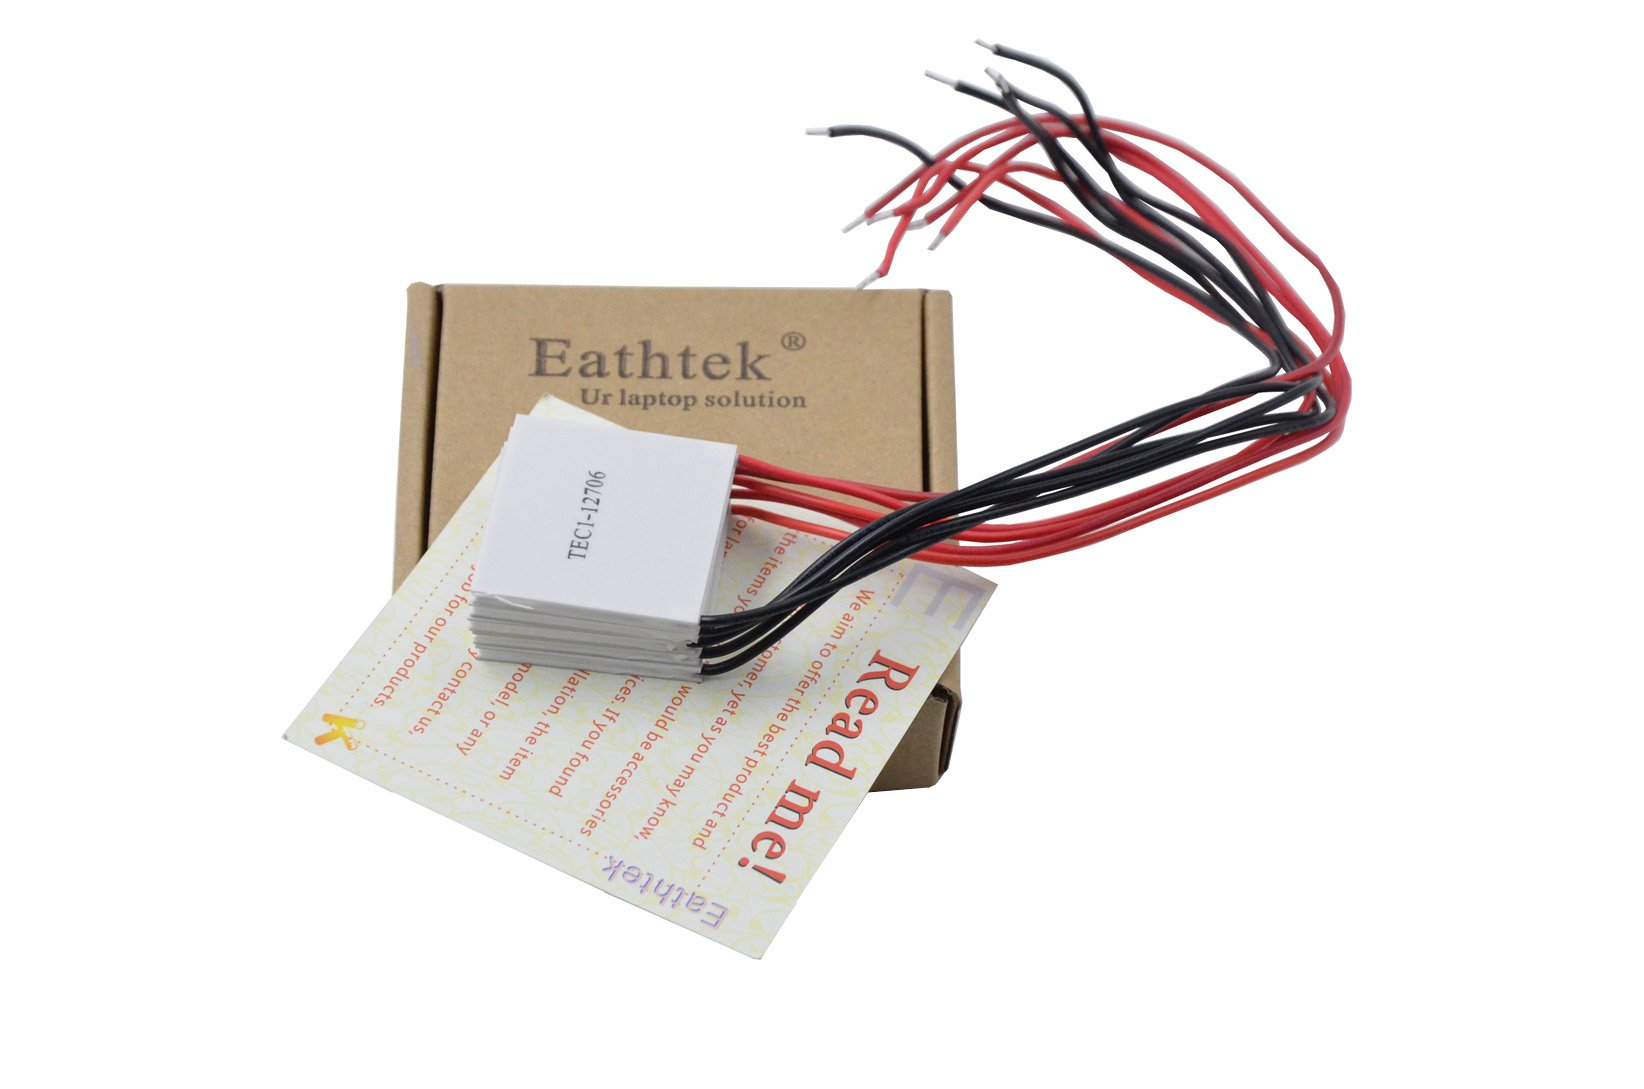 Vktech TEC1-12706 Thermoelectric Cooler Heat Sink 12V 5.8A 5Pcs